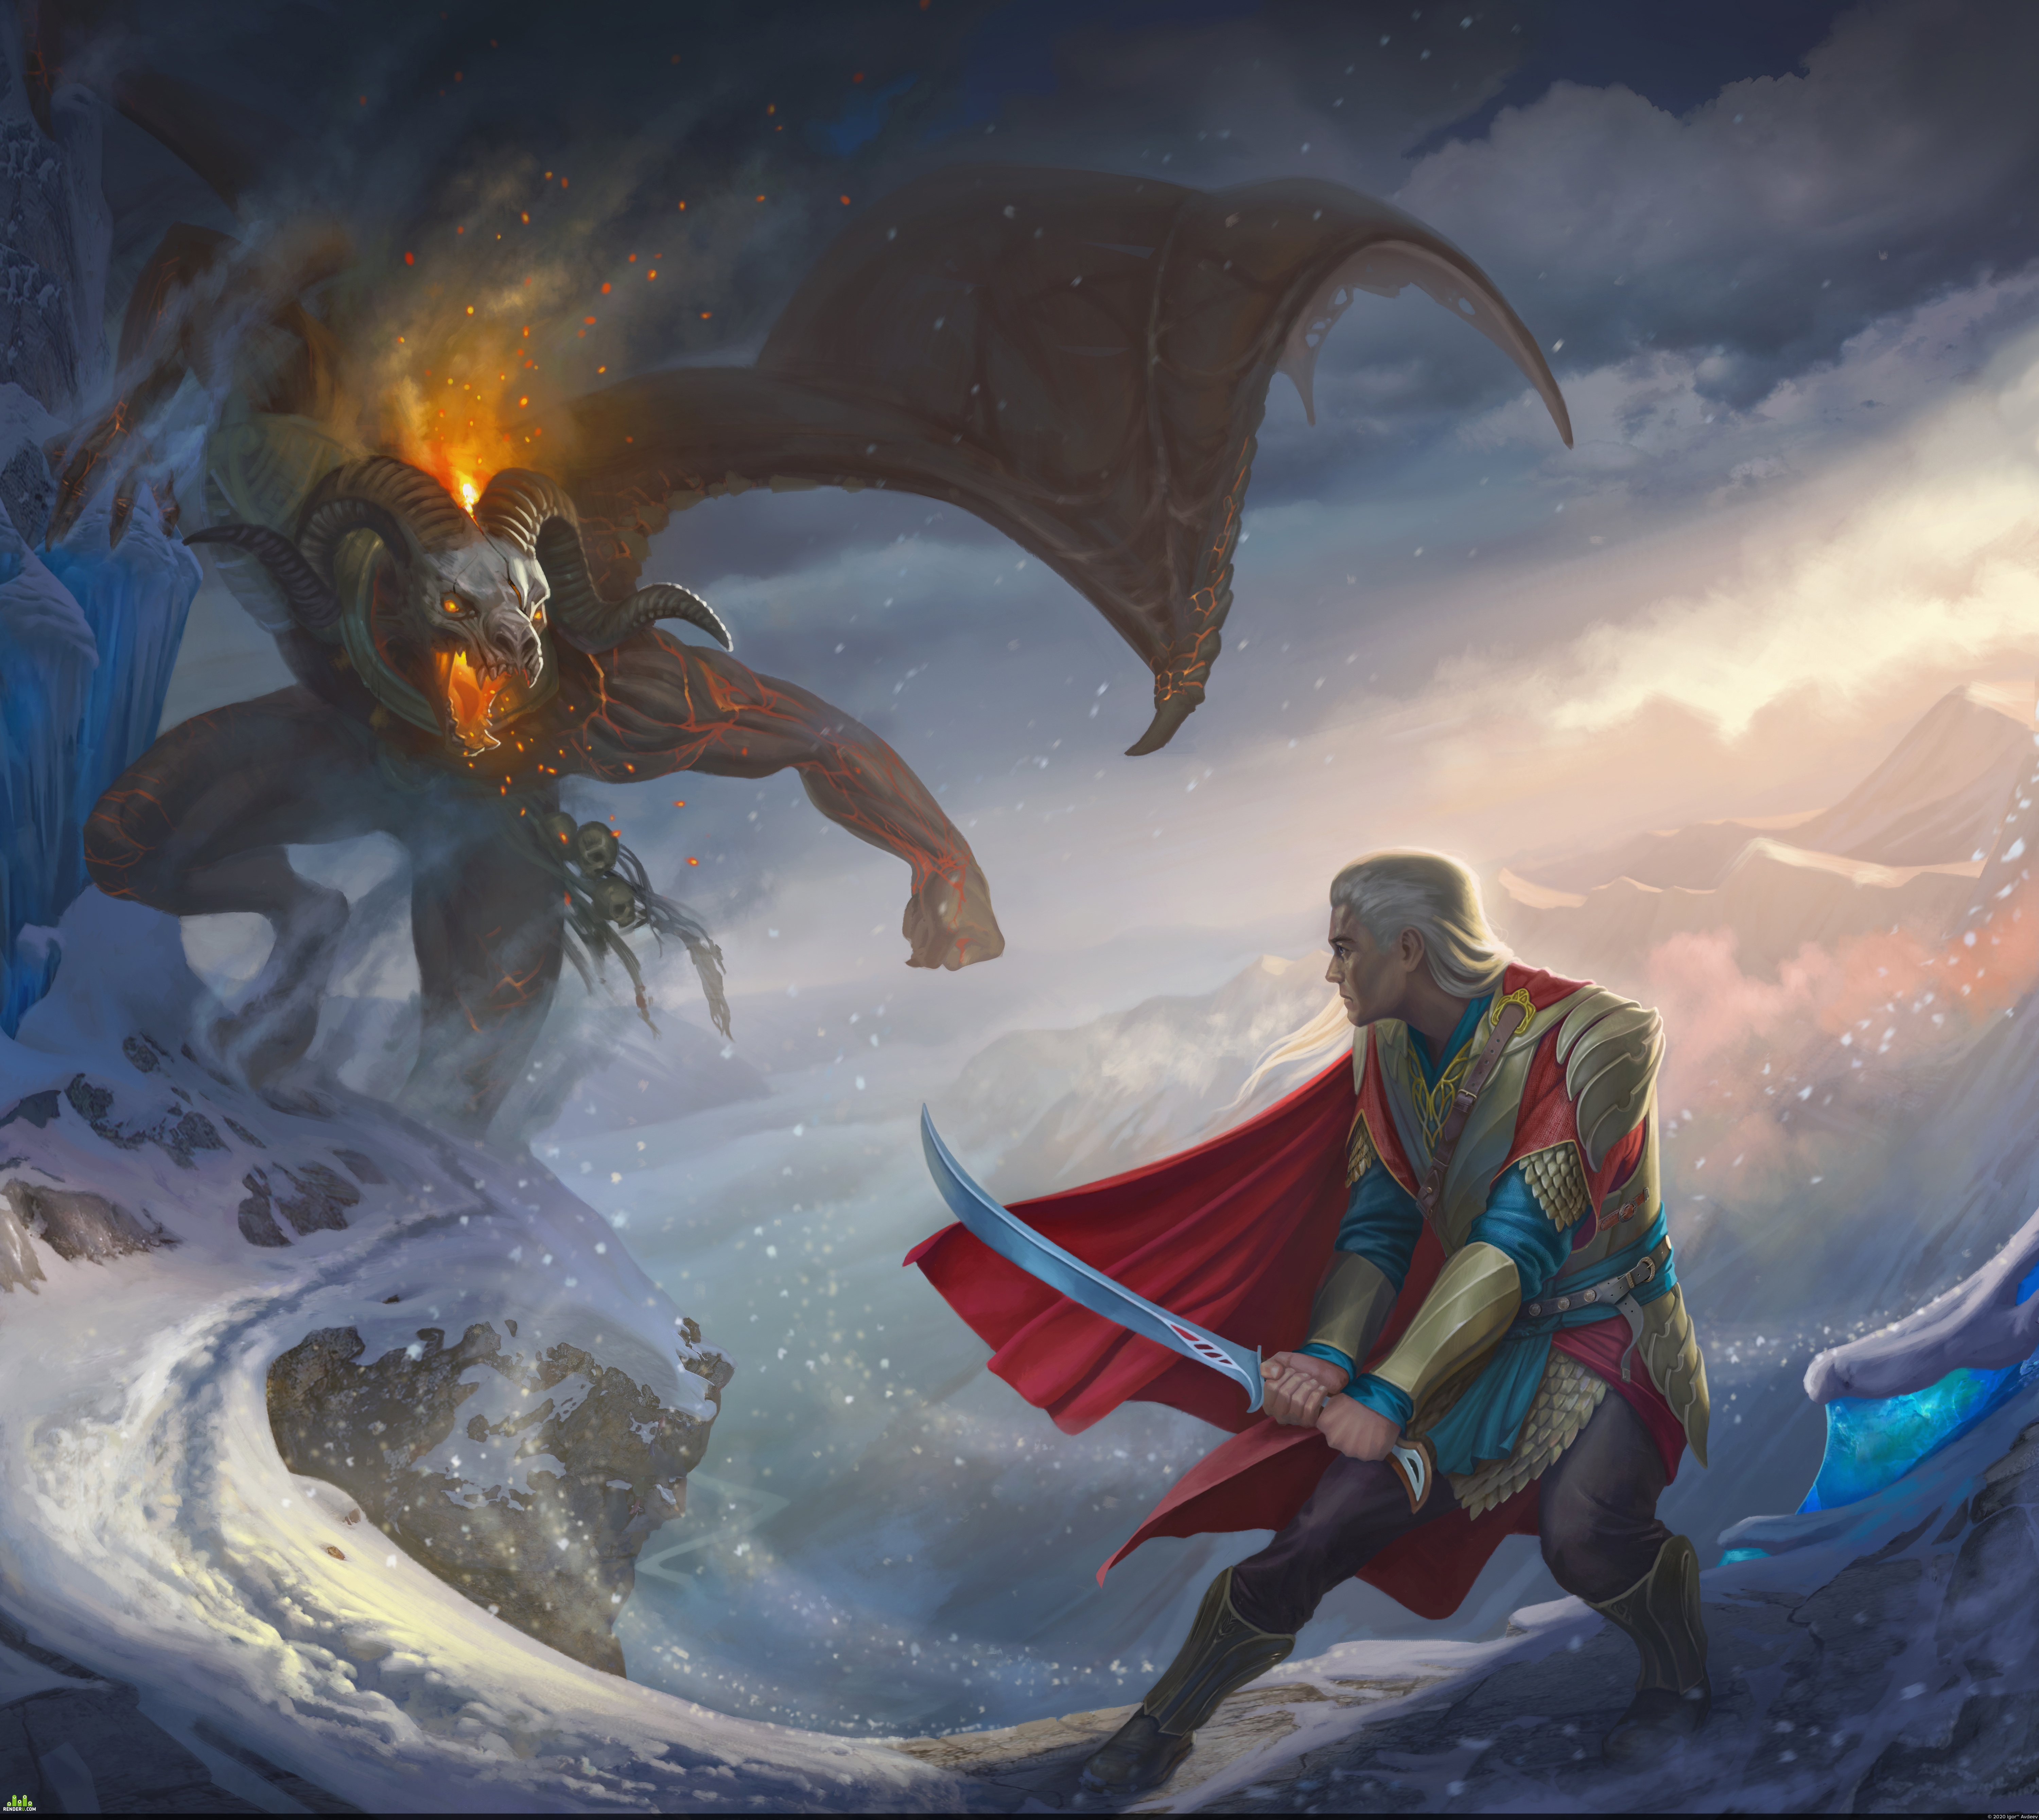 preview Duel between Glorfindel and the Balrog in Gondolin